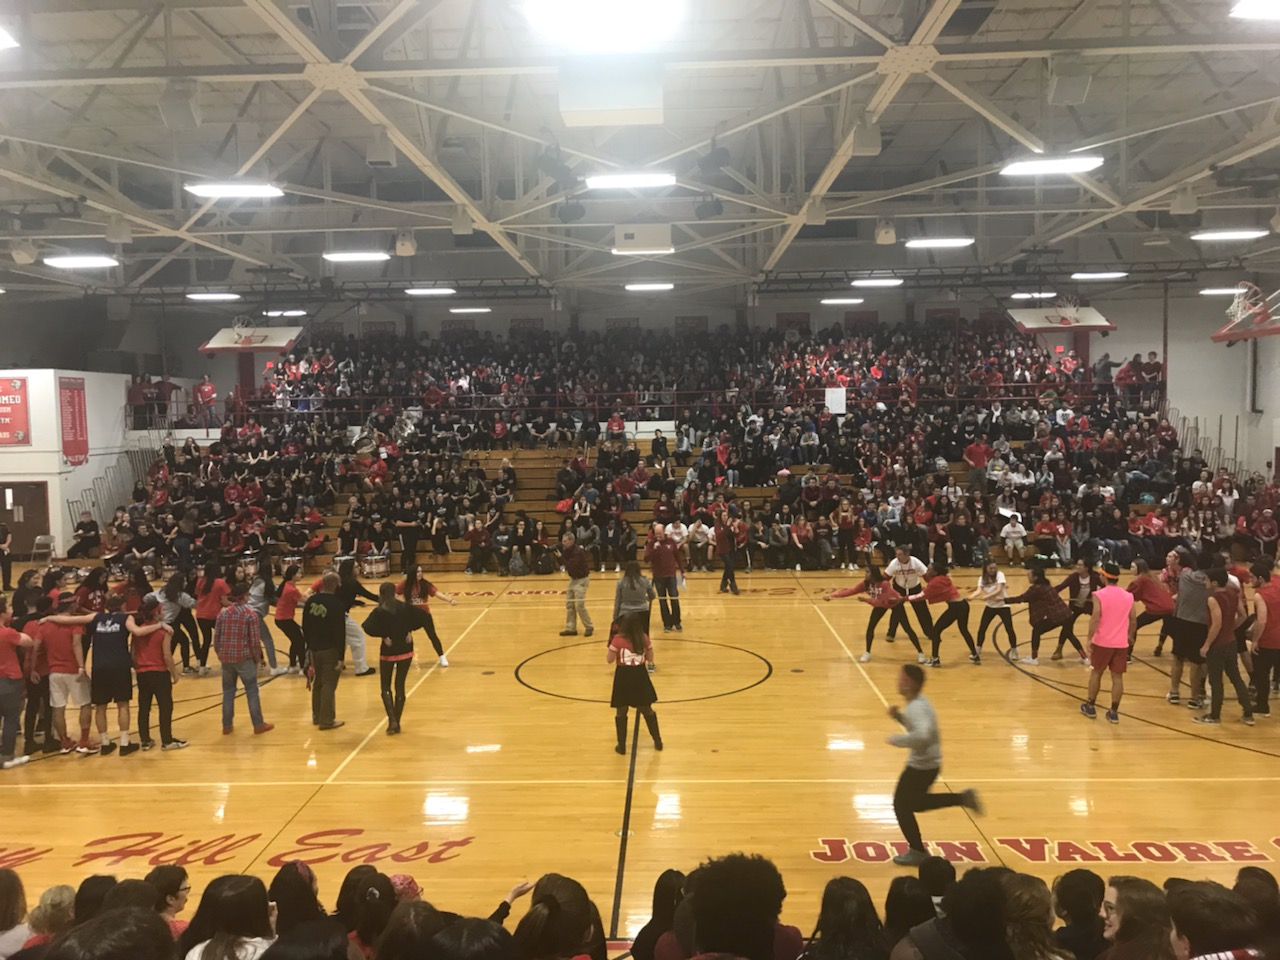 The junior class faces the senior class during the tug of war event during the pep rally.